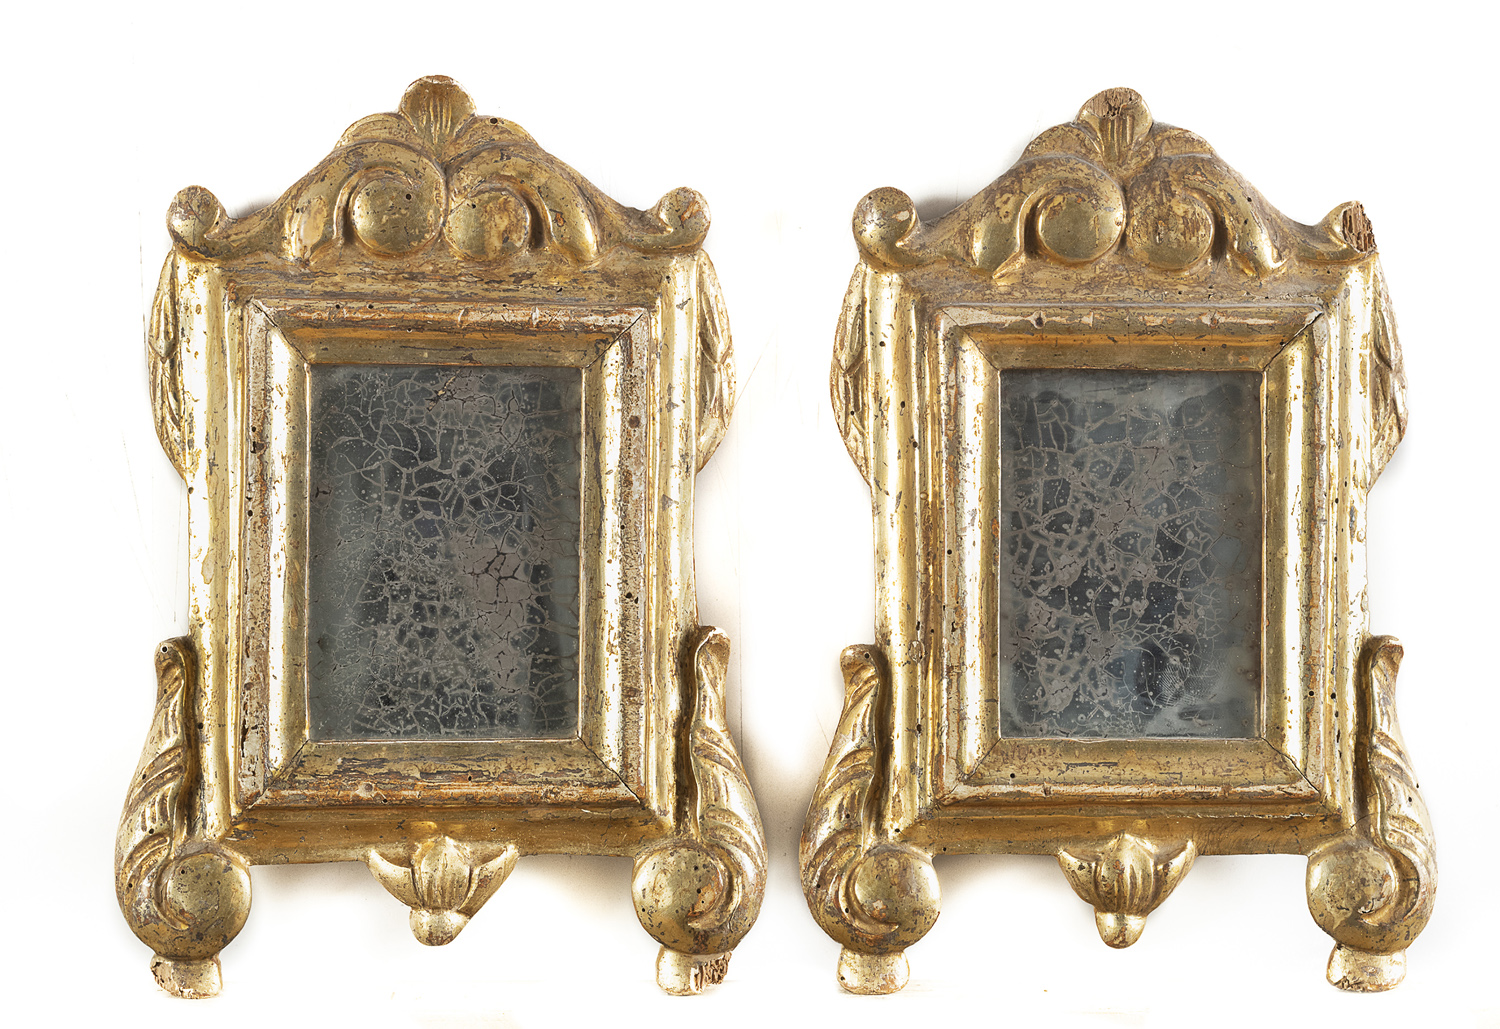 PAIR OF GILTWOOD MIRRORS NAPLES LATE 18th CENTURY